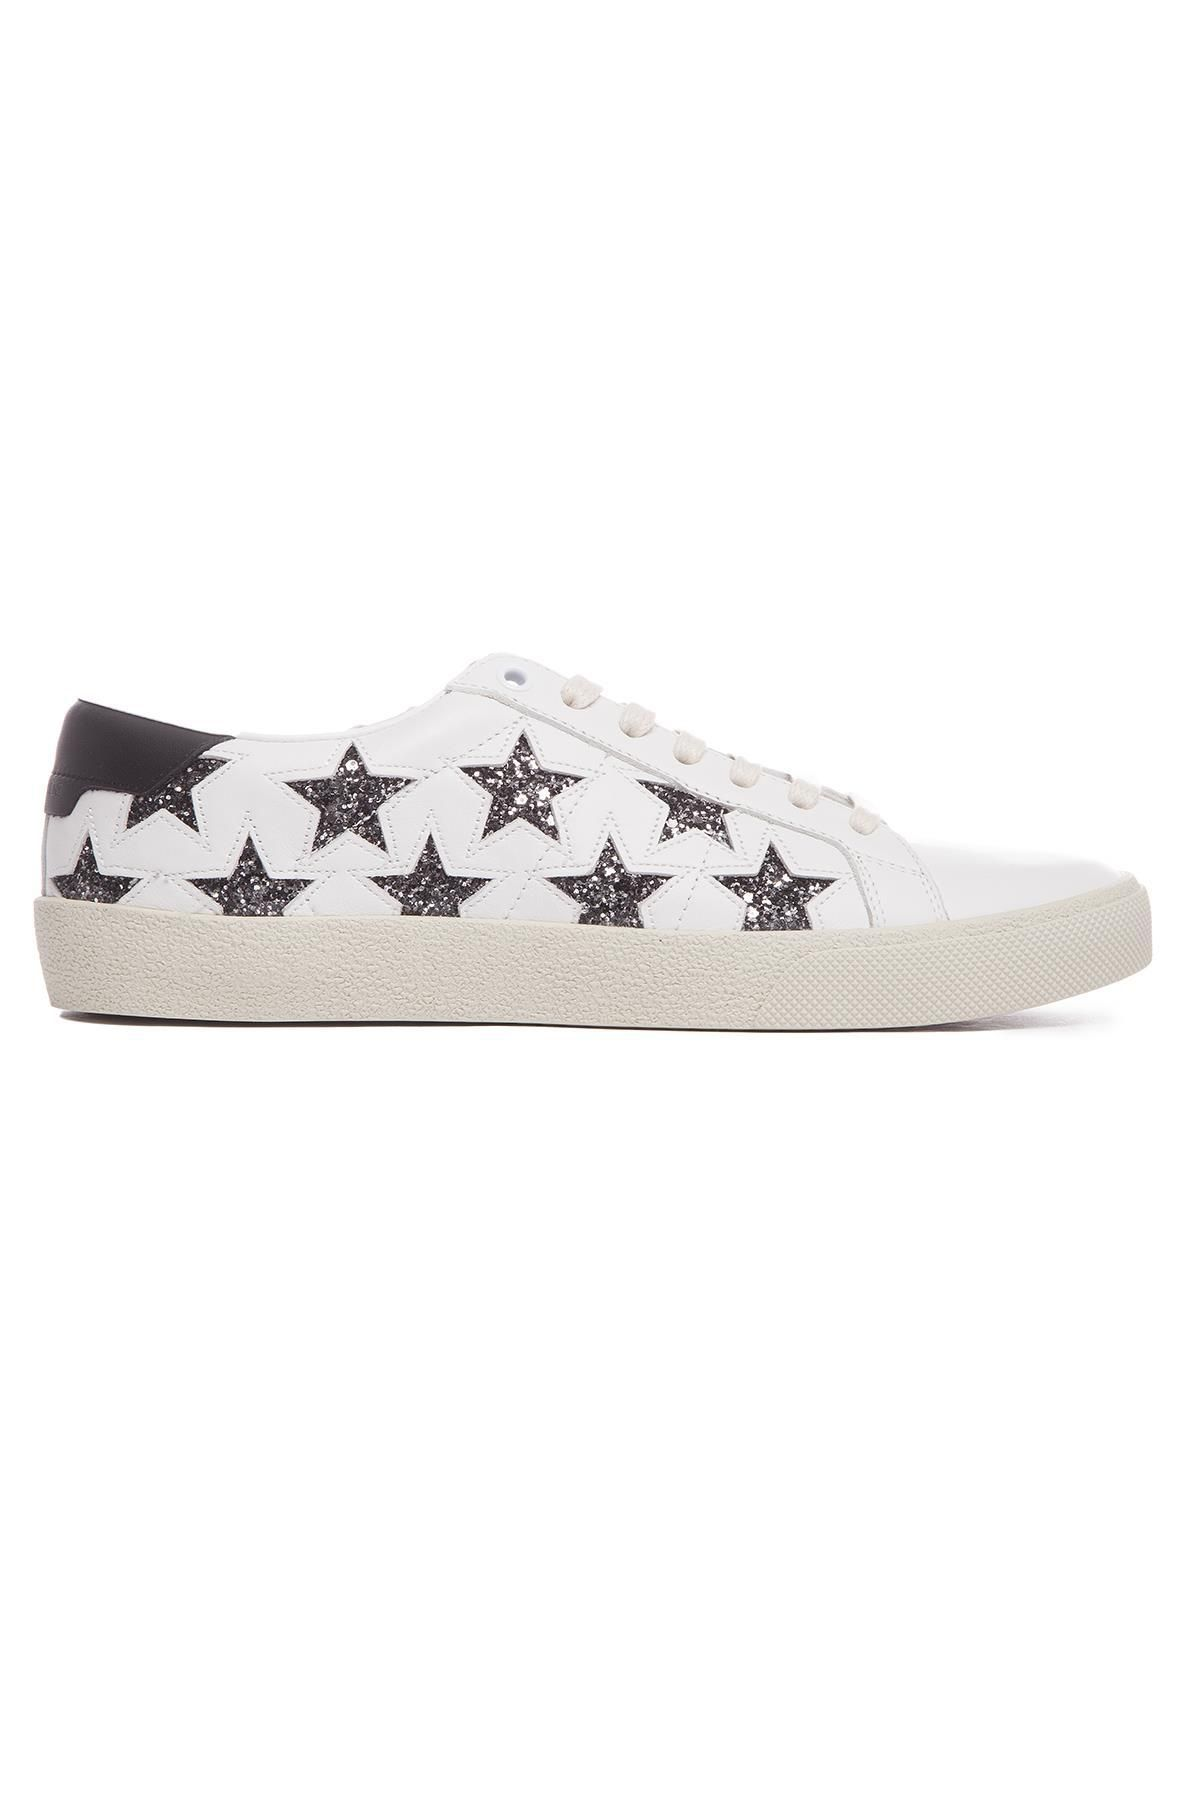 c7399b9118 SAINT LAURENT SAINT LAURENT GLITTER STAR SNEAKERS. #saintlaurent ...